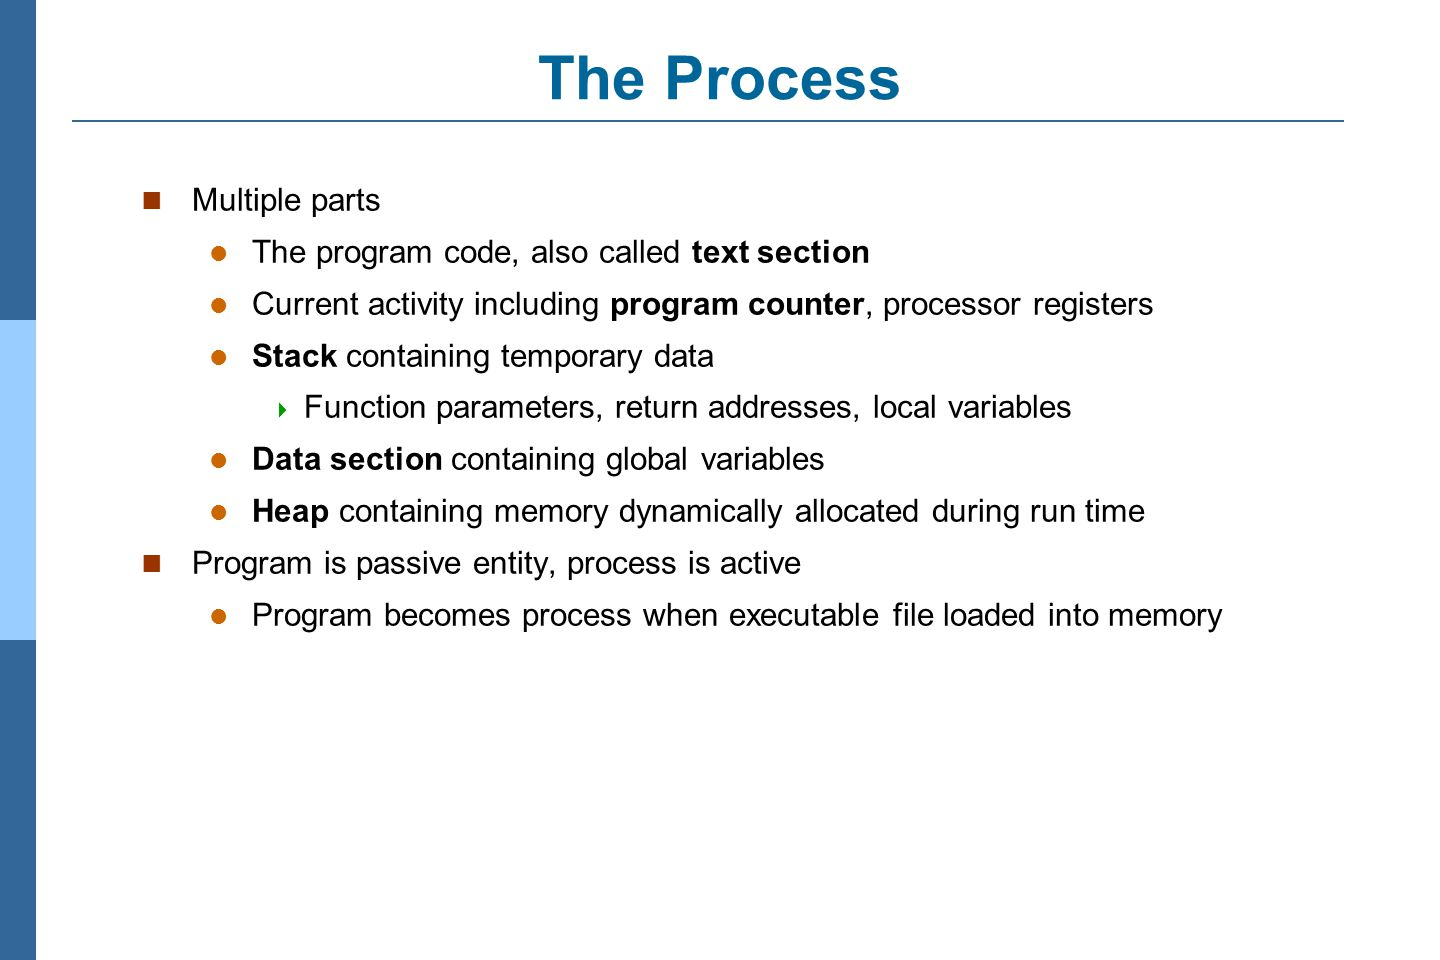 3.9 Silberschatz, Galvin and Gagne ©2011 Operating System Concepts Essentials – 8 th Edition The Process Multiple parts The program code, also called text section Current activity including program counter, processor registers Stack containing temporary data  Function parameters, return addresses, local variables Data section containing global variables Heap containing memory dynamically allocated during run time Program is passive entity, process is active Program becomes process when executable file loaded into memory